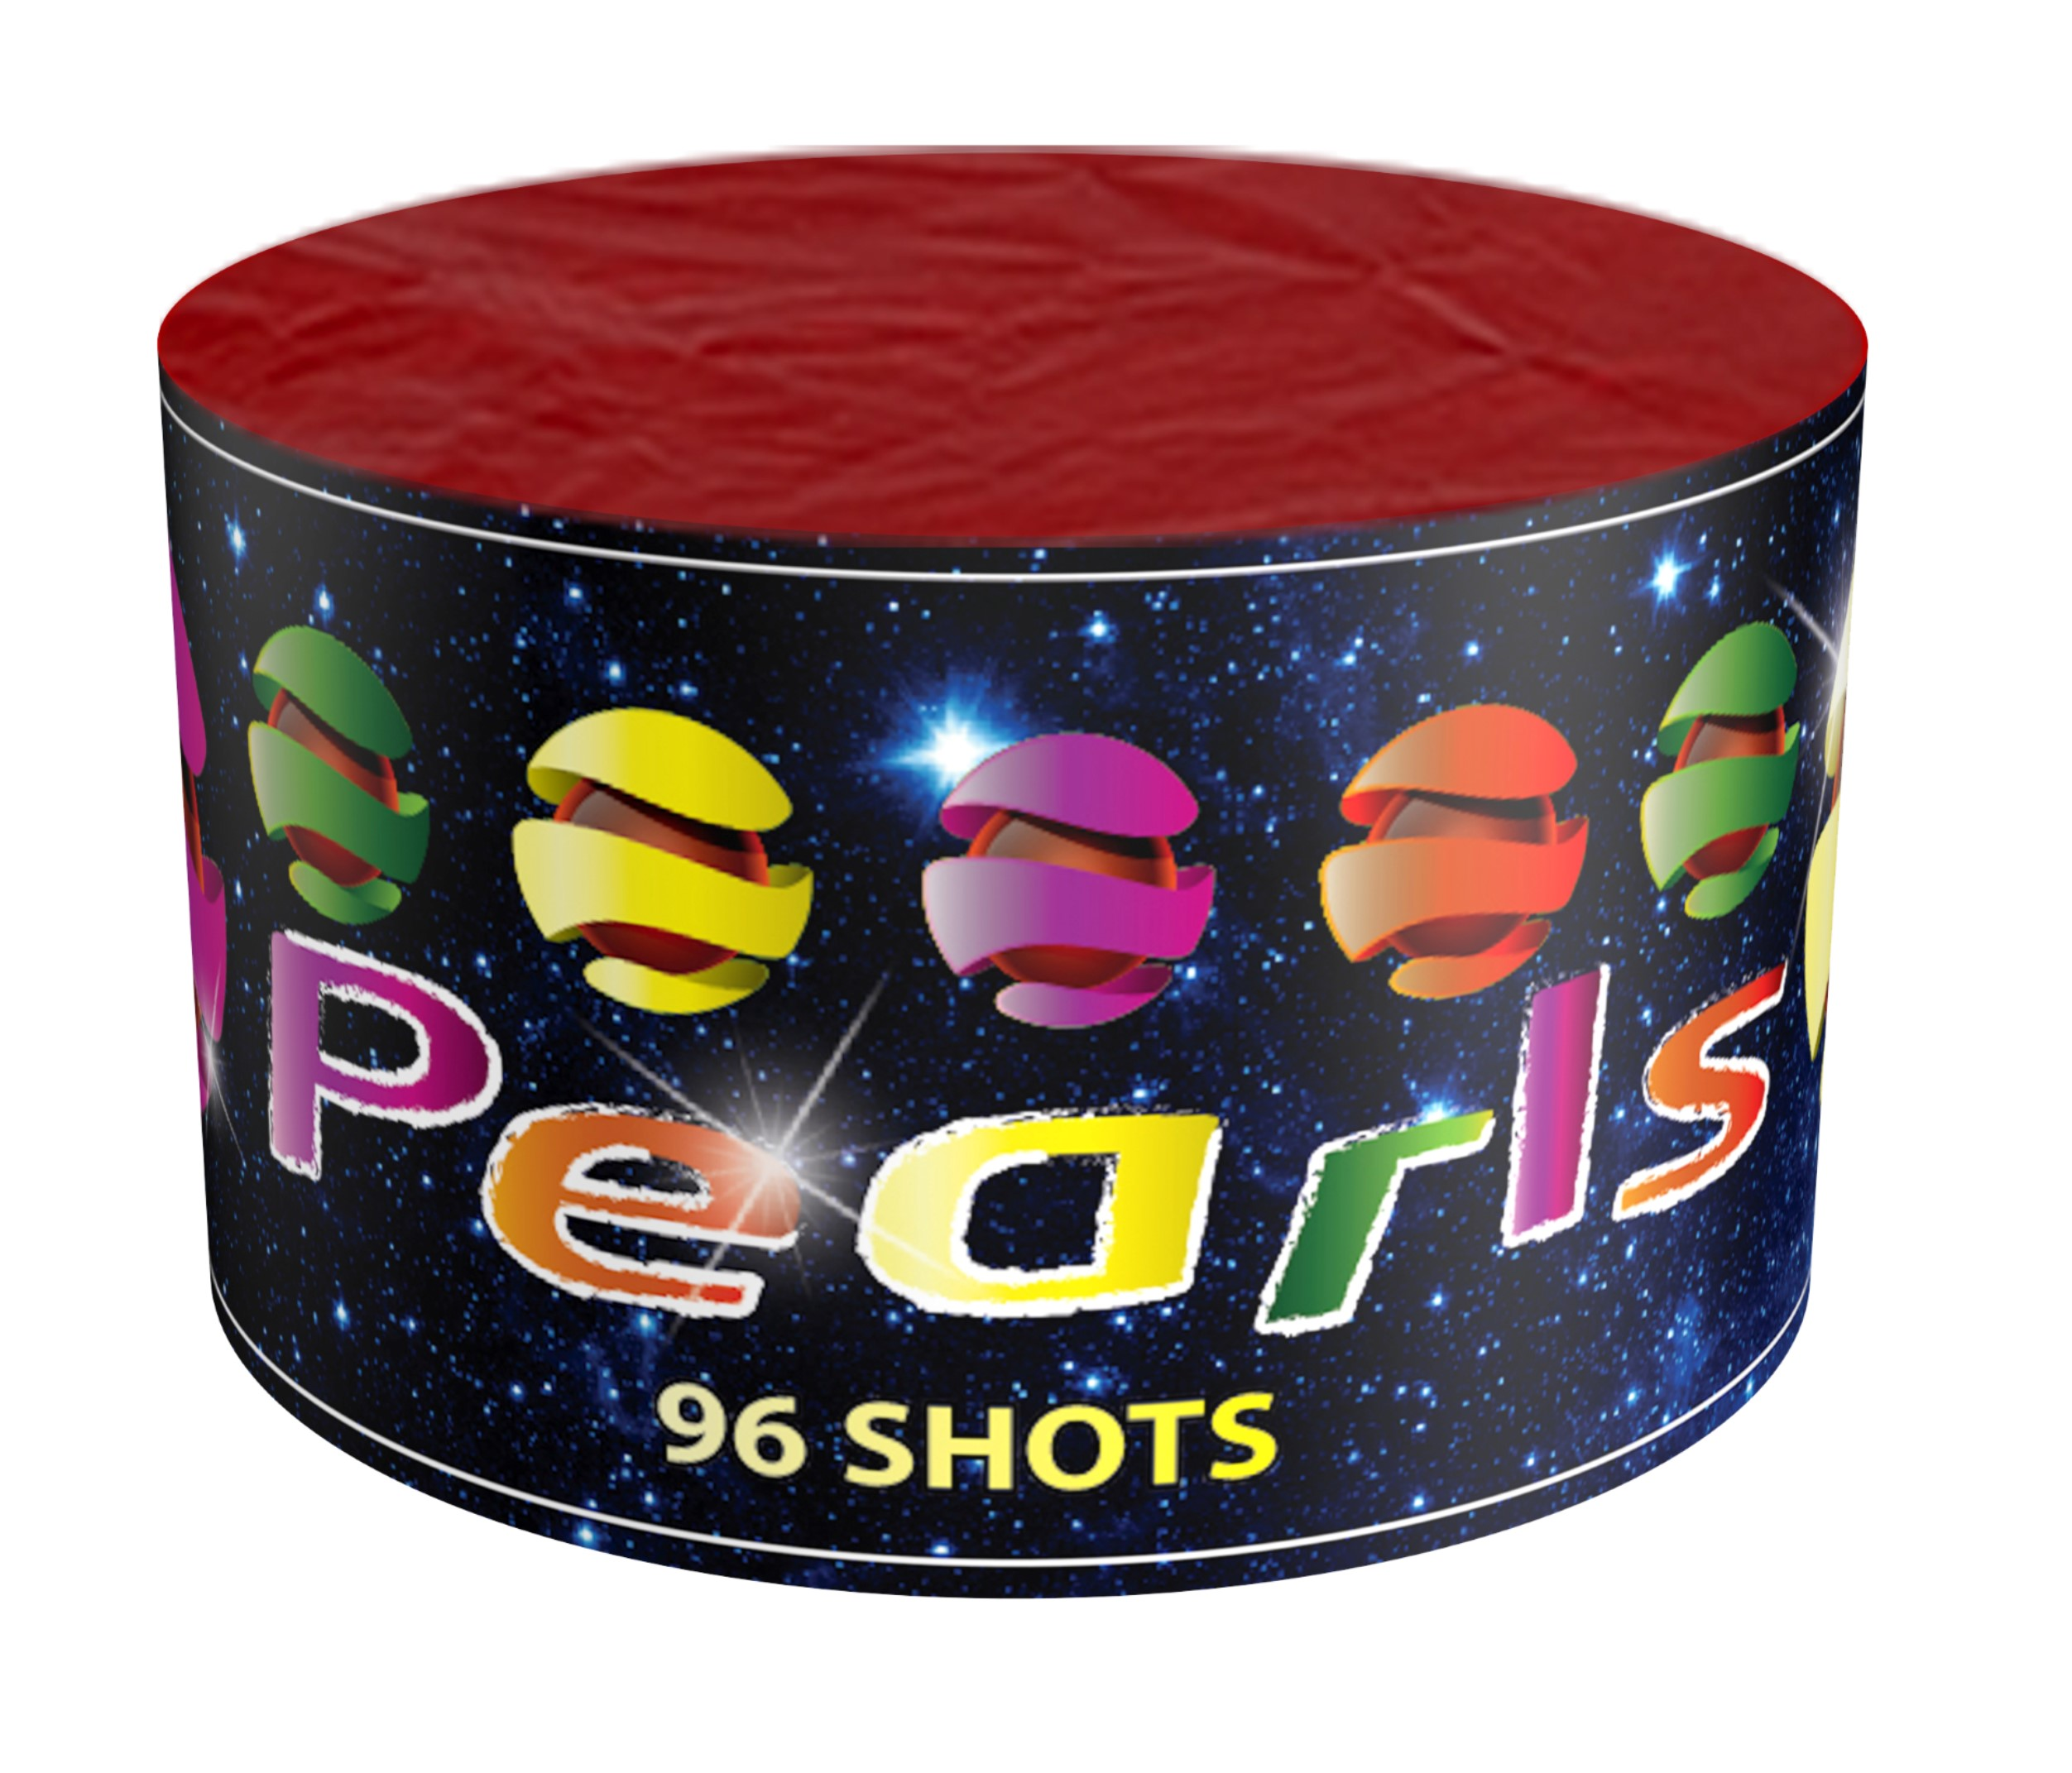 ART. 5602 COLOR PEARLS, 96 SHOTS.